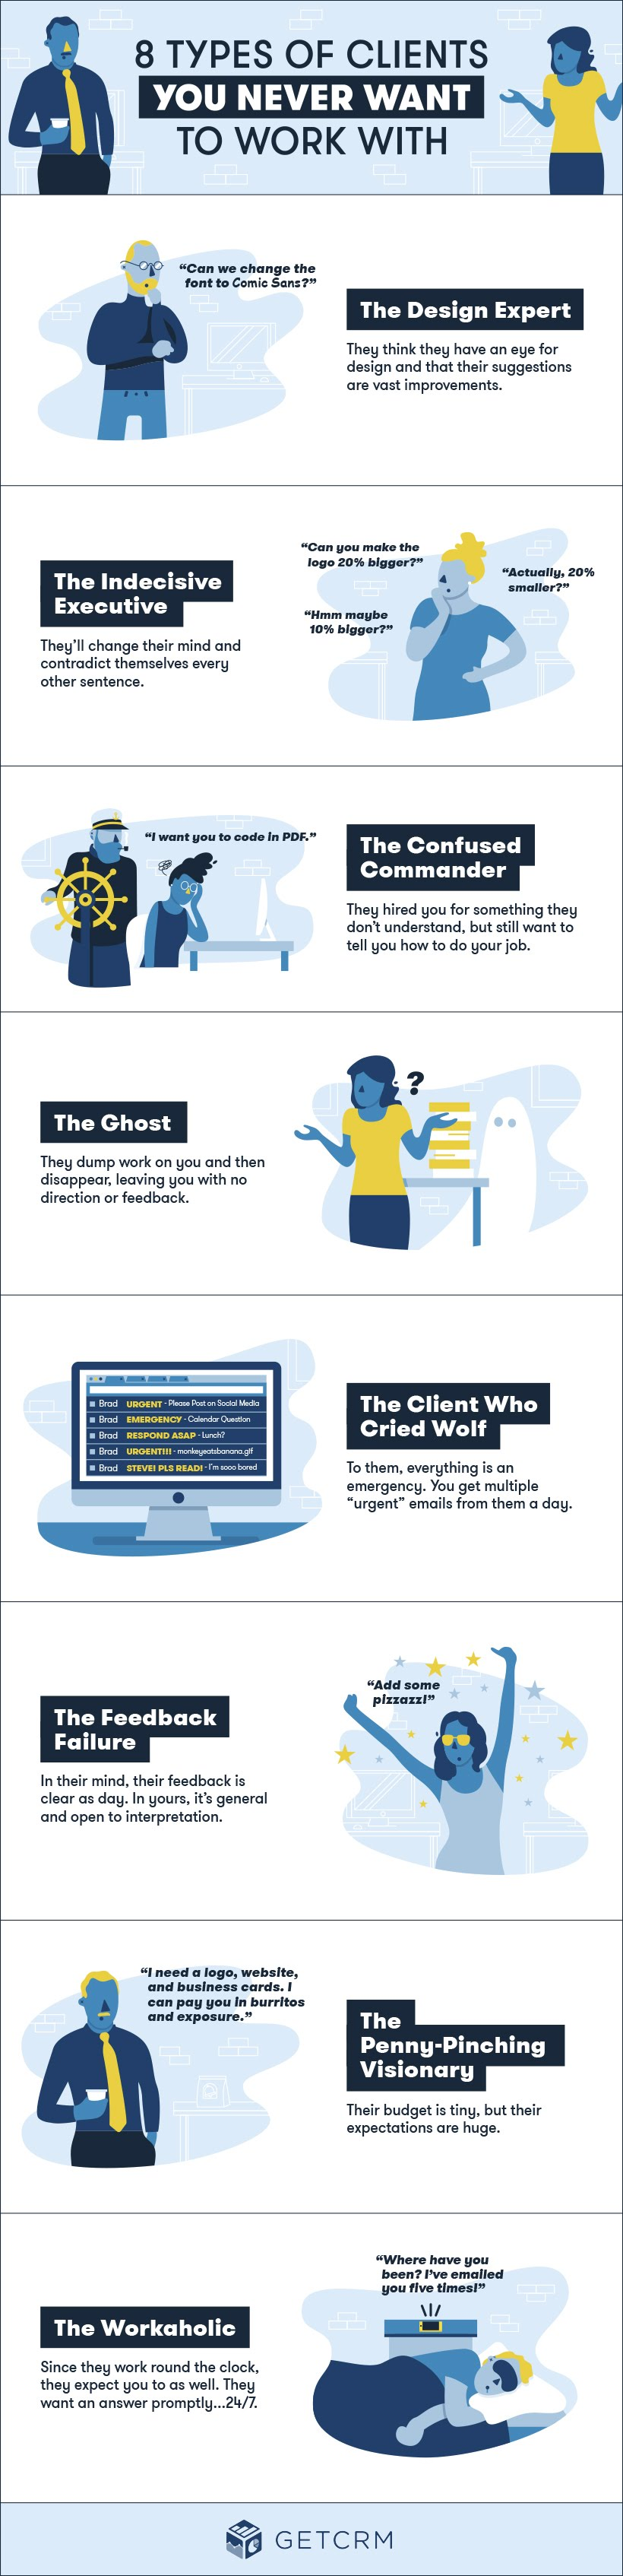 8 Types of Clients You Never Want to Work With - #Infographic